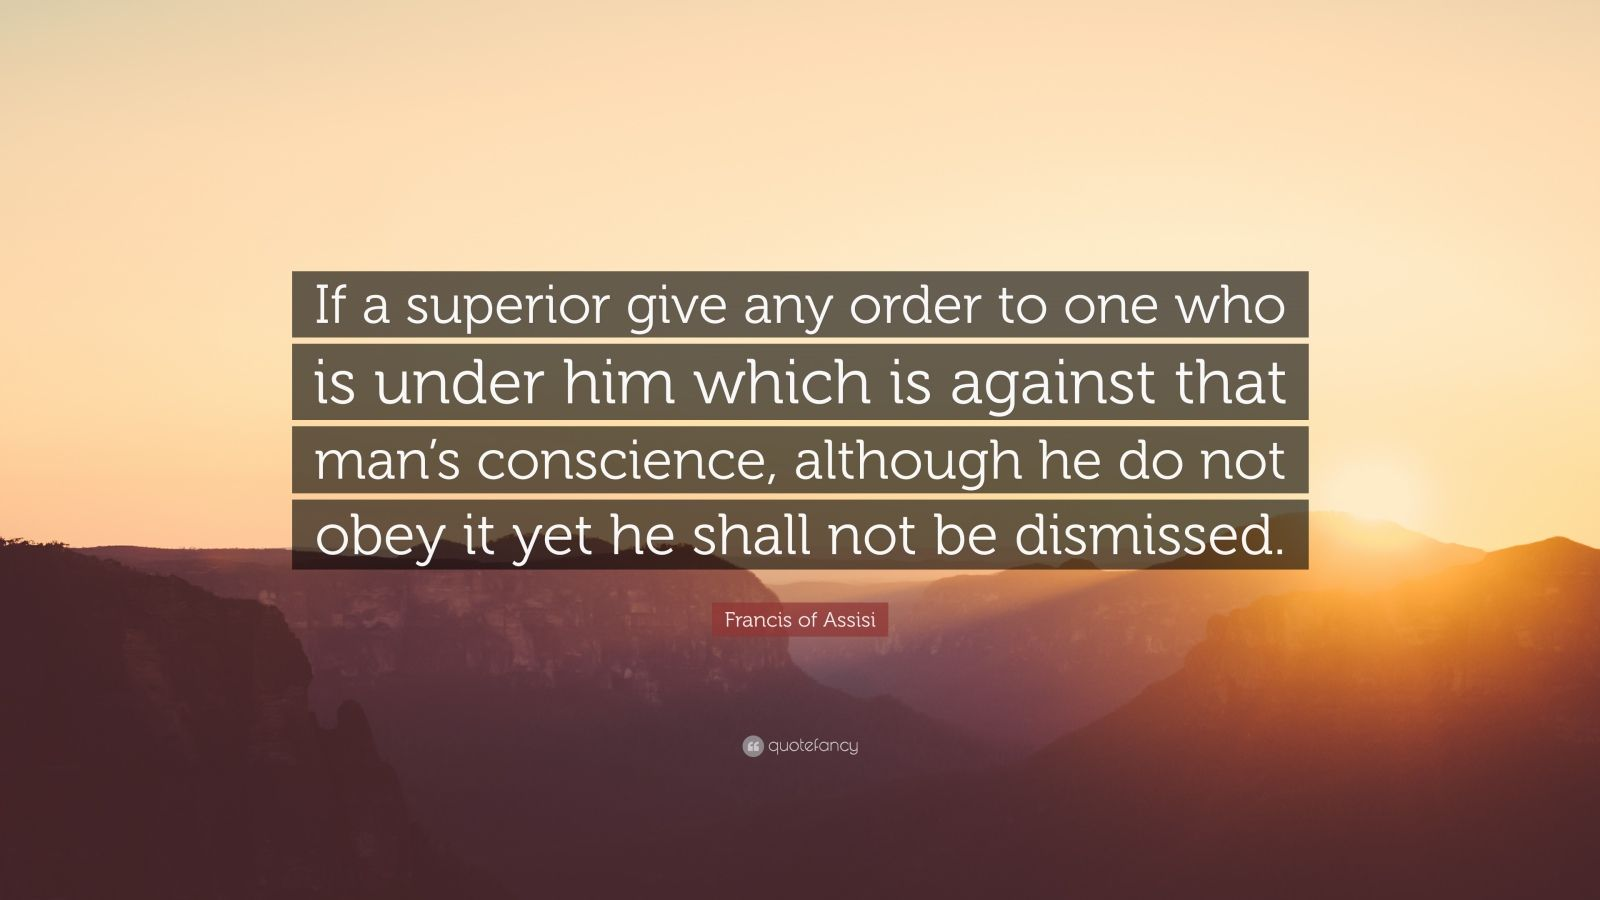 """Francis of Assisi Quote: """"If a superior give any order to one who is under him which is against that man's conscience, although he do not obey it yet he shall not be dismissed."""""""